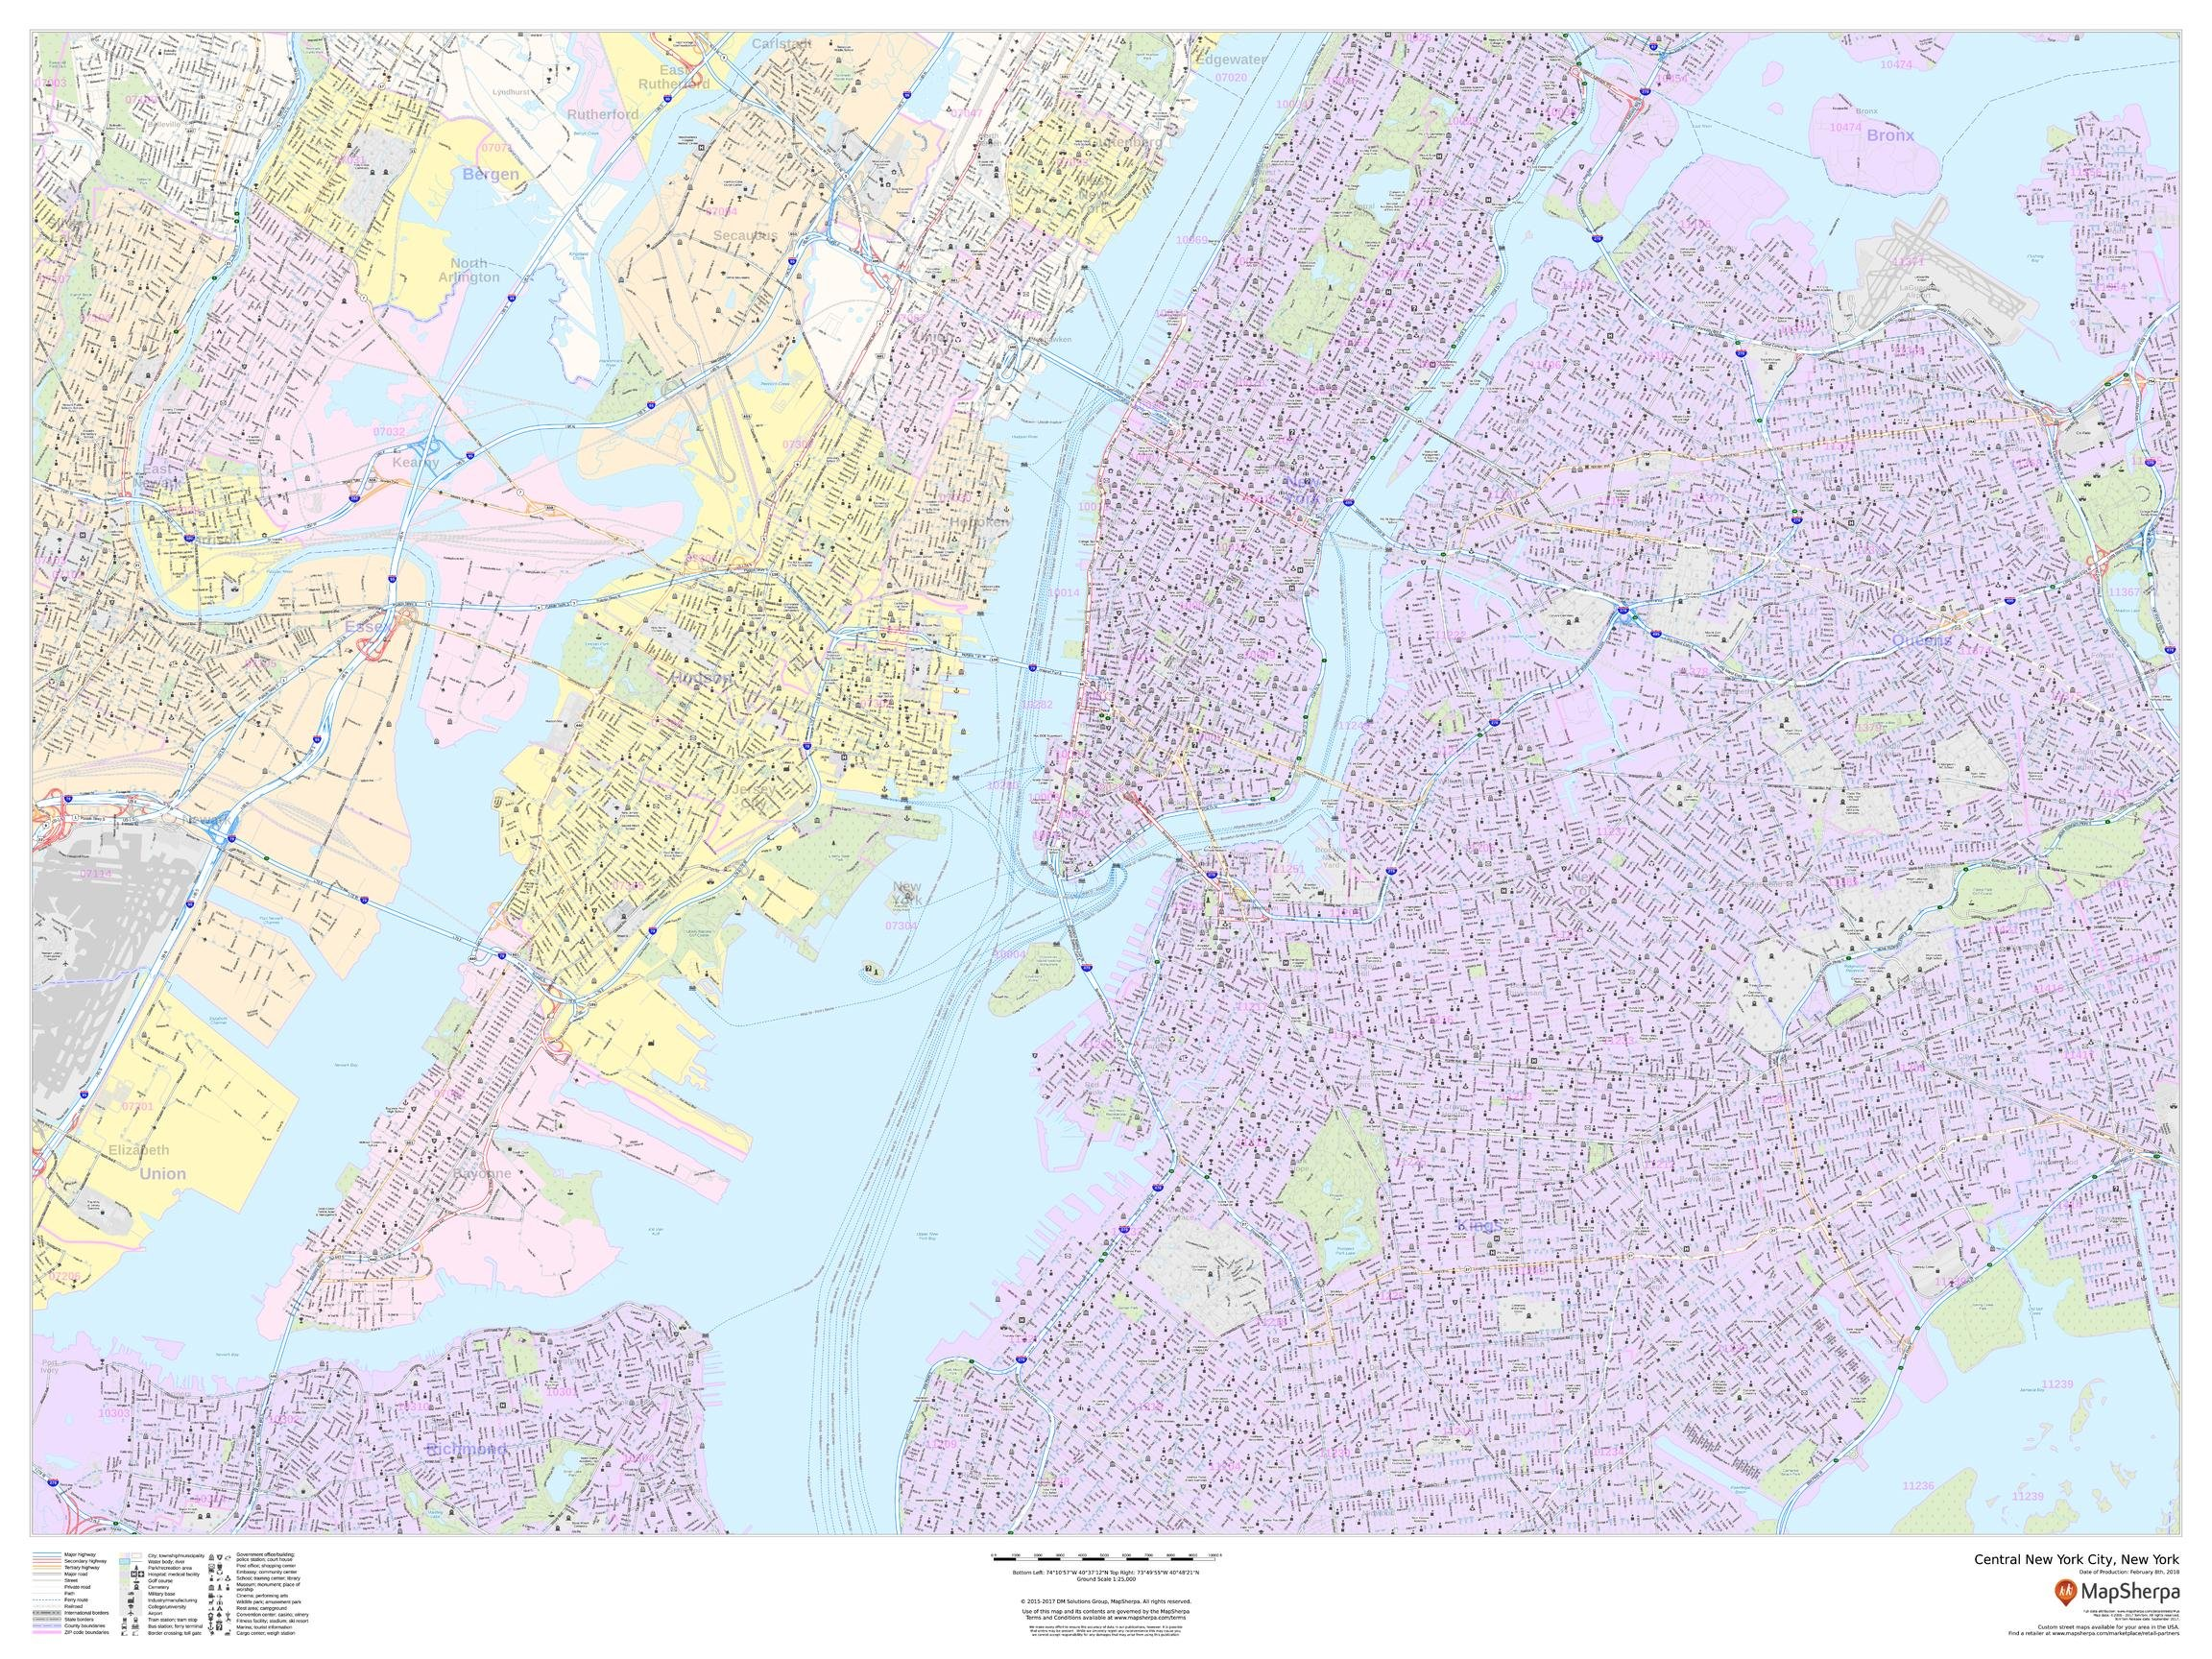 Central New York City, New York - Landscape - 48 x 36 inches - Laminated - Wall Map